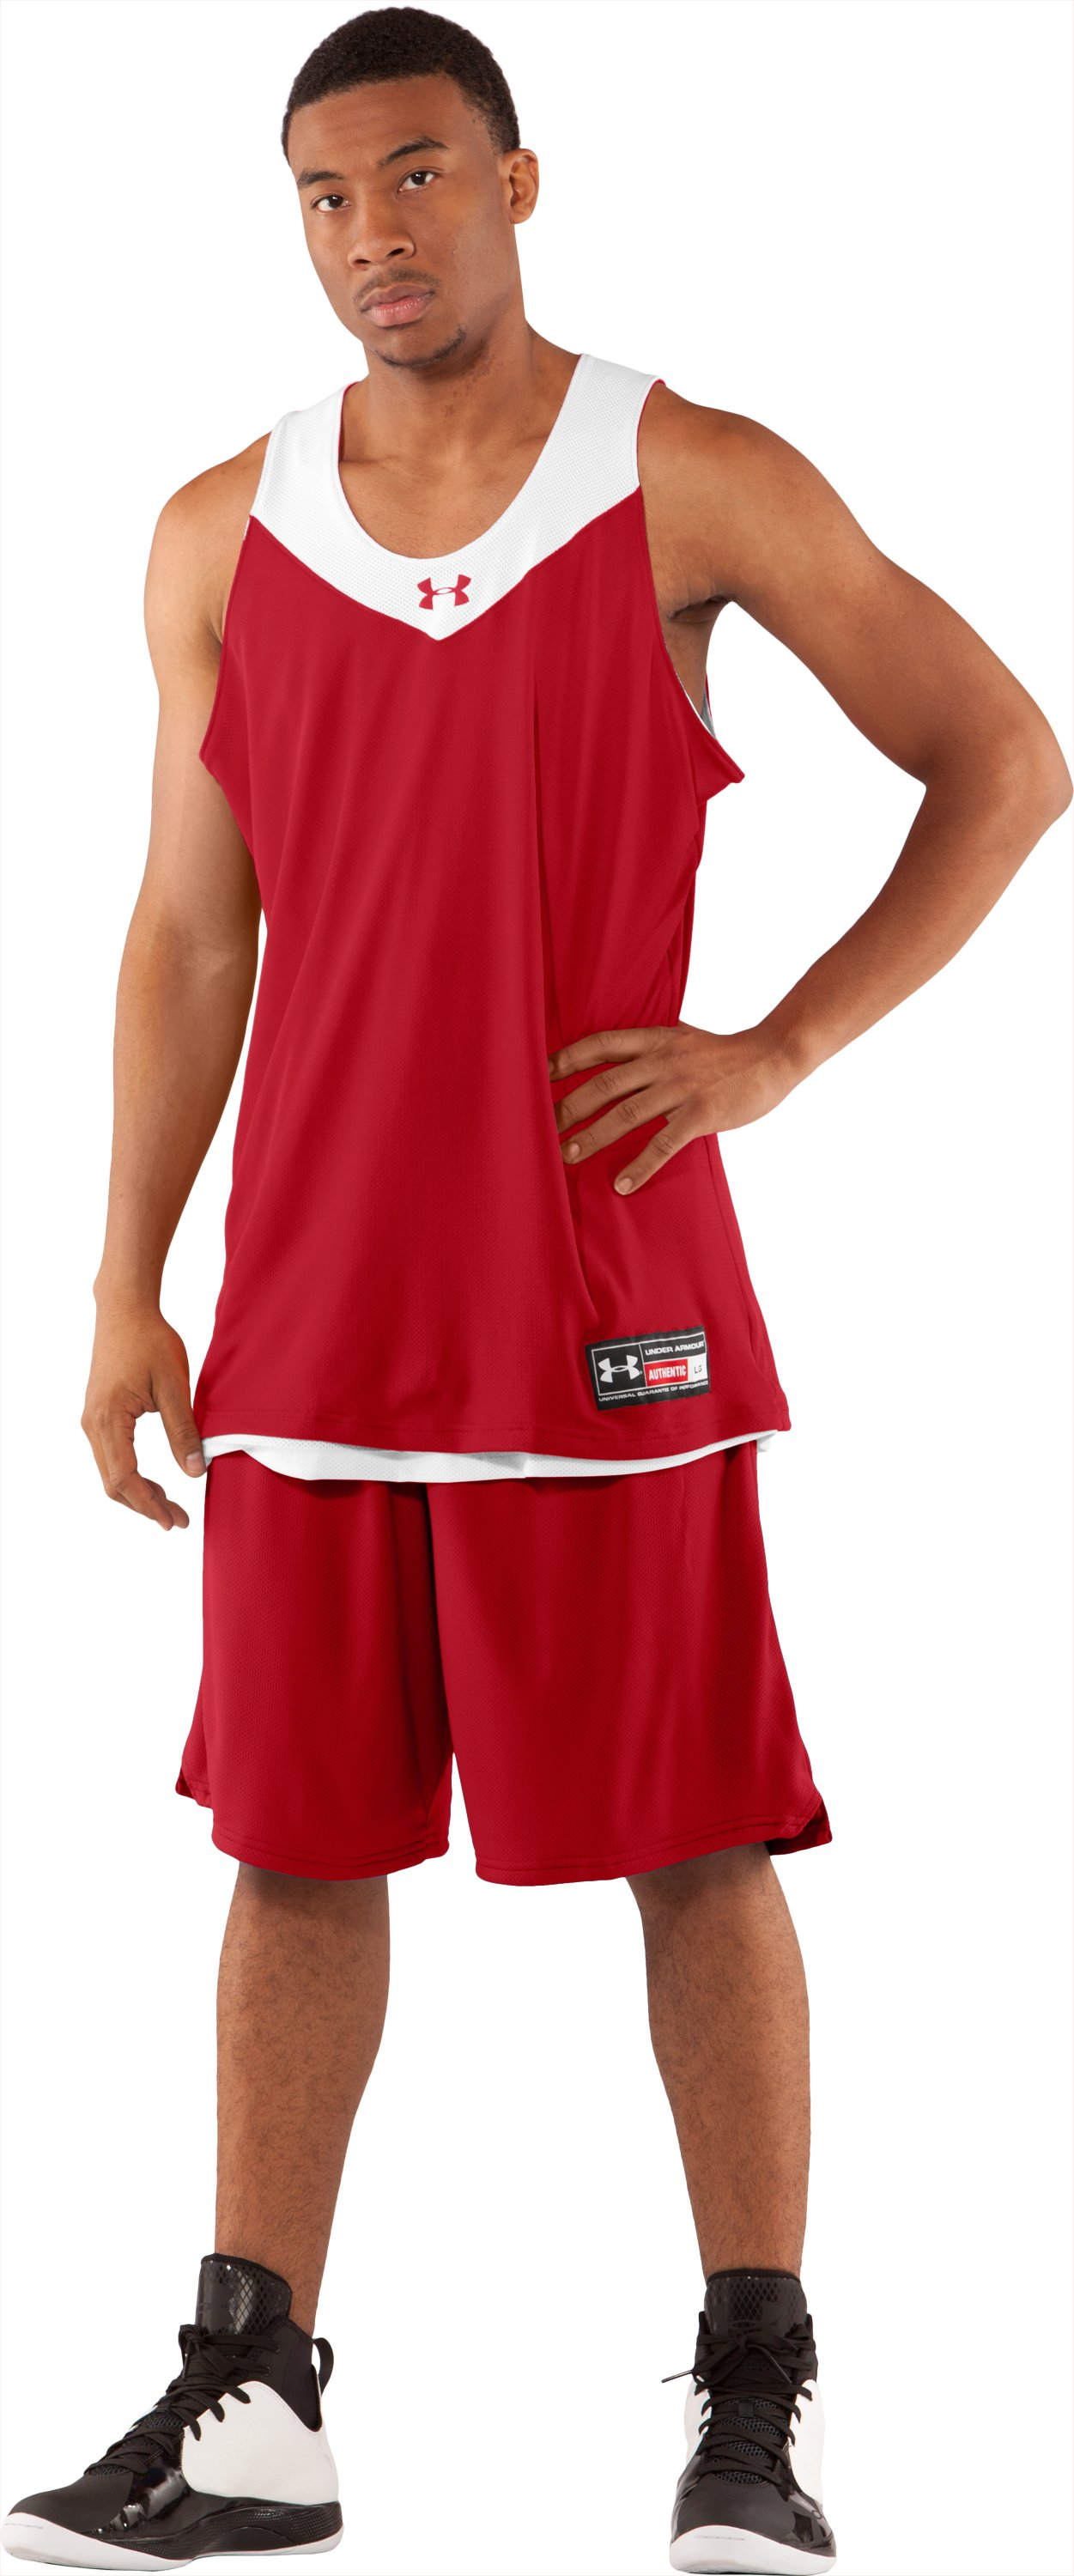 Men's Repeat Reversible Basketball Jersey, Red